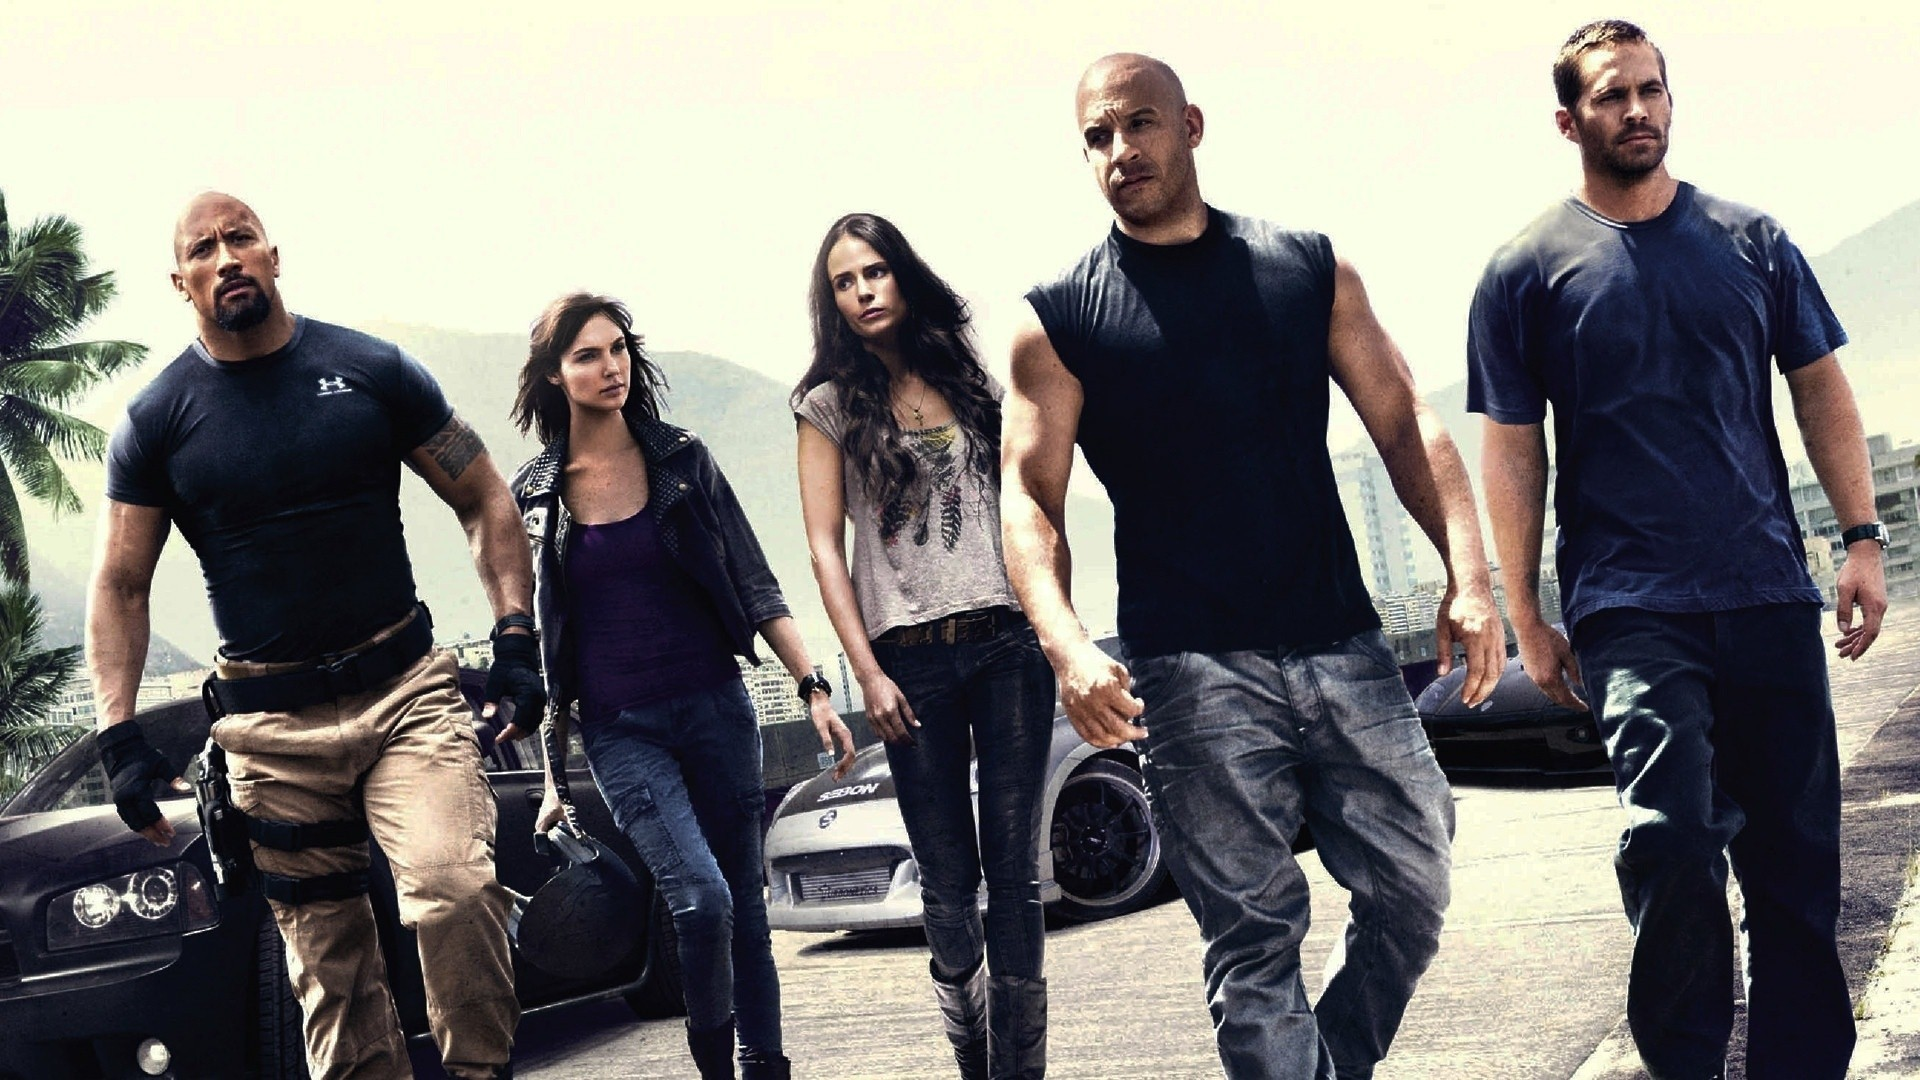 Vin Diesel Fast and Furious Wallpapers